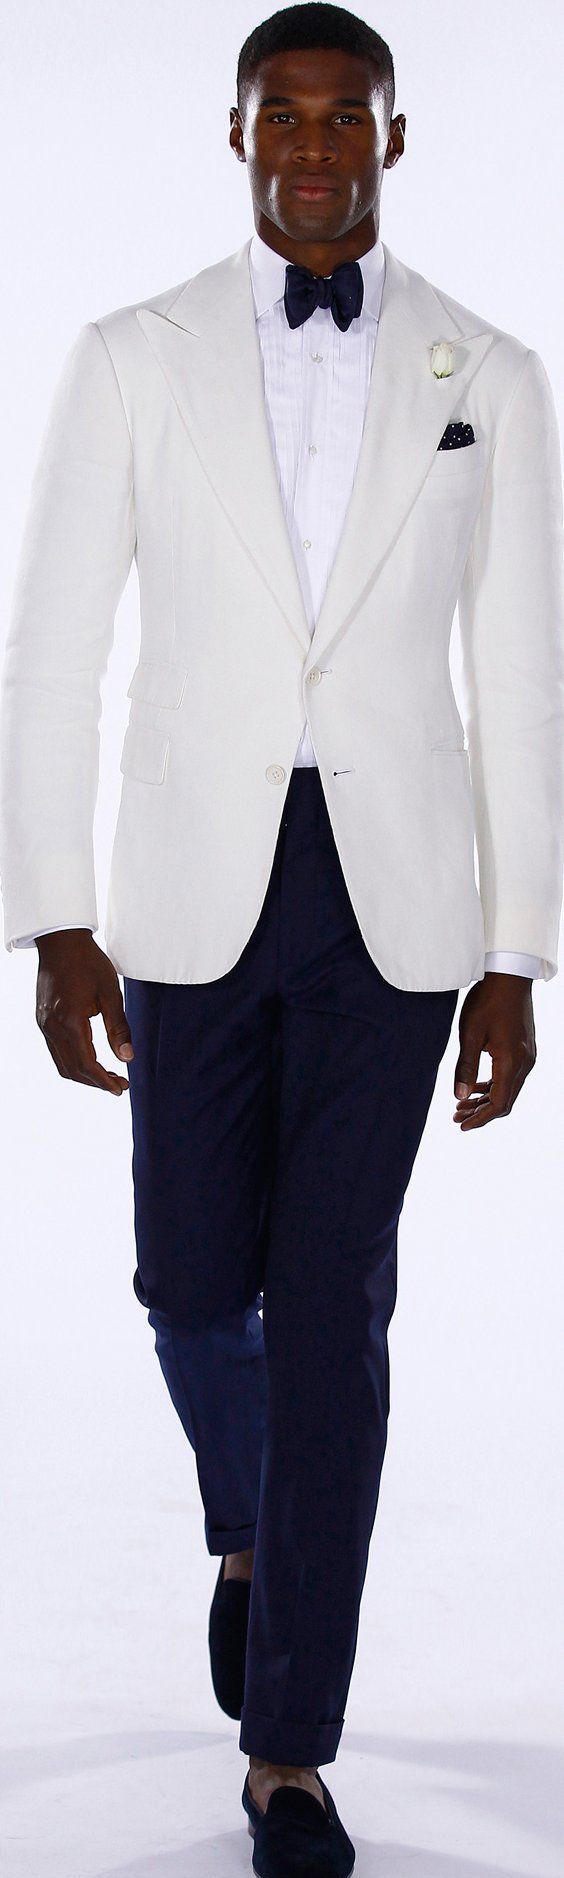 Chaqueta de tux en blanco con pantalones y corbata estilo moño en azul. Ralph Lauren 2016. White tuxedo jacket with blue bowtie and blue pants.